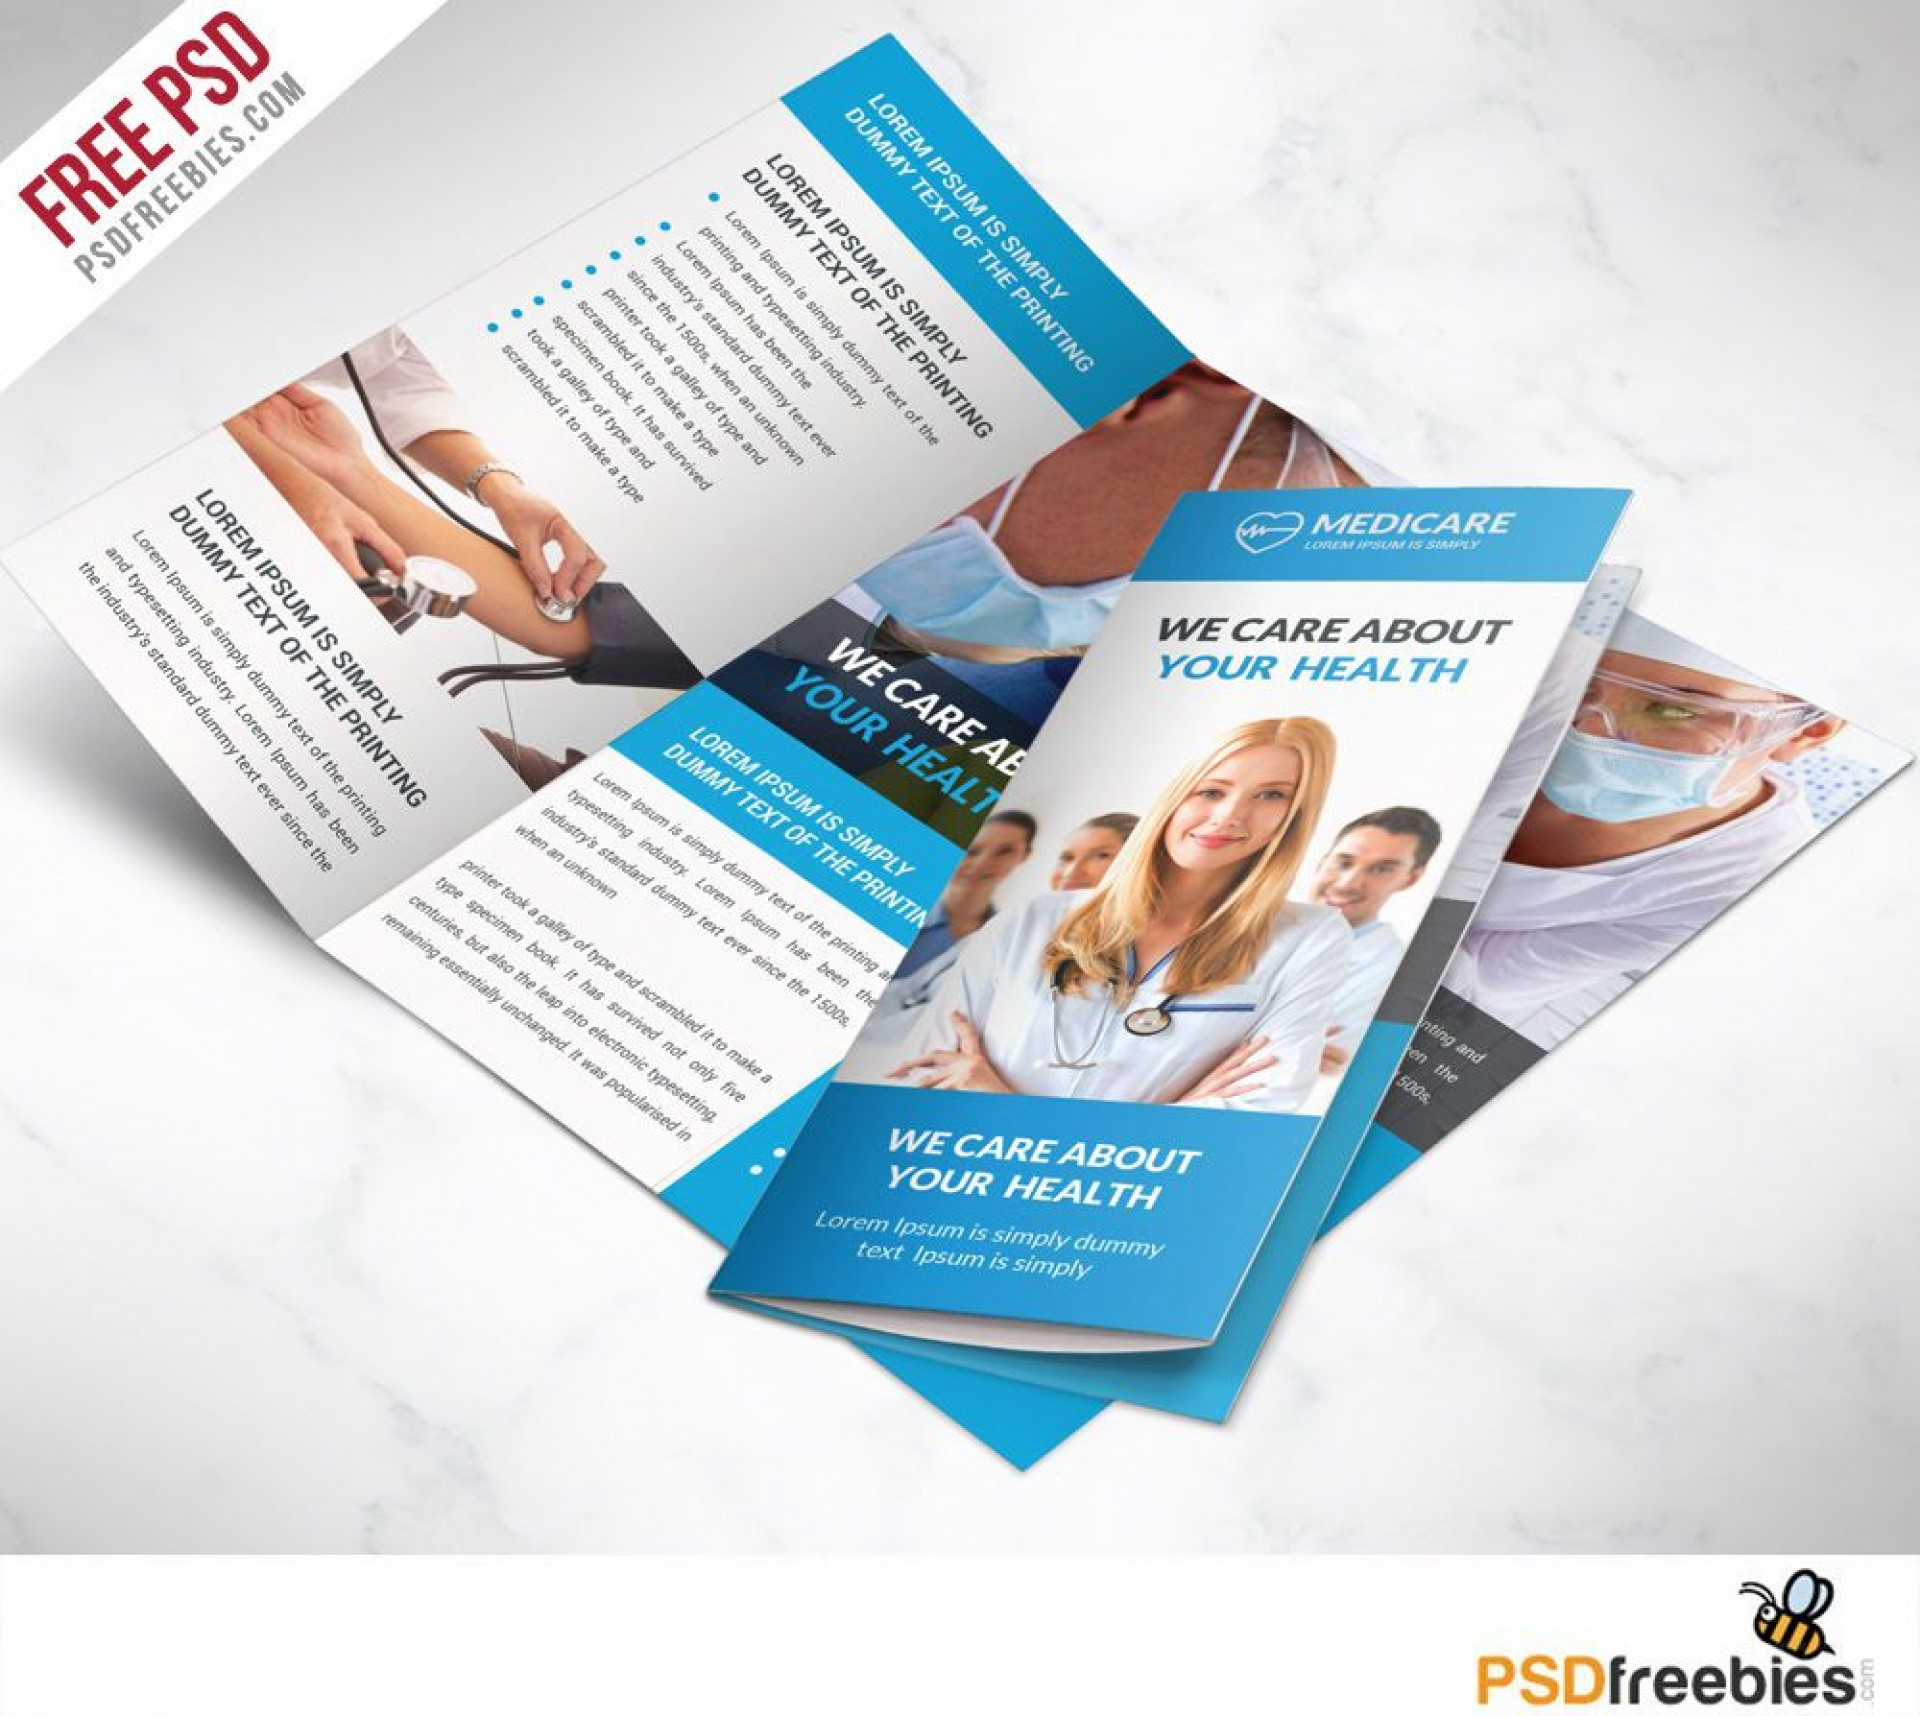 007 Shocking Brochure Template Photoshop Cs6 Free Download High Resolution 1920